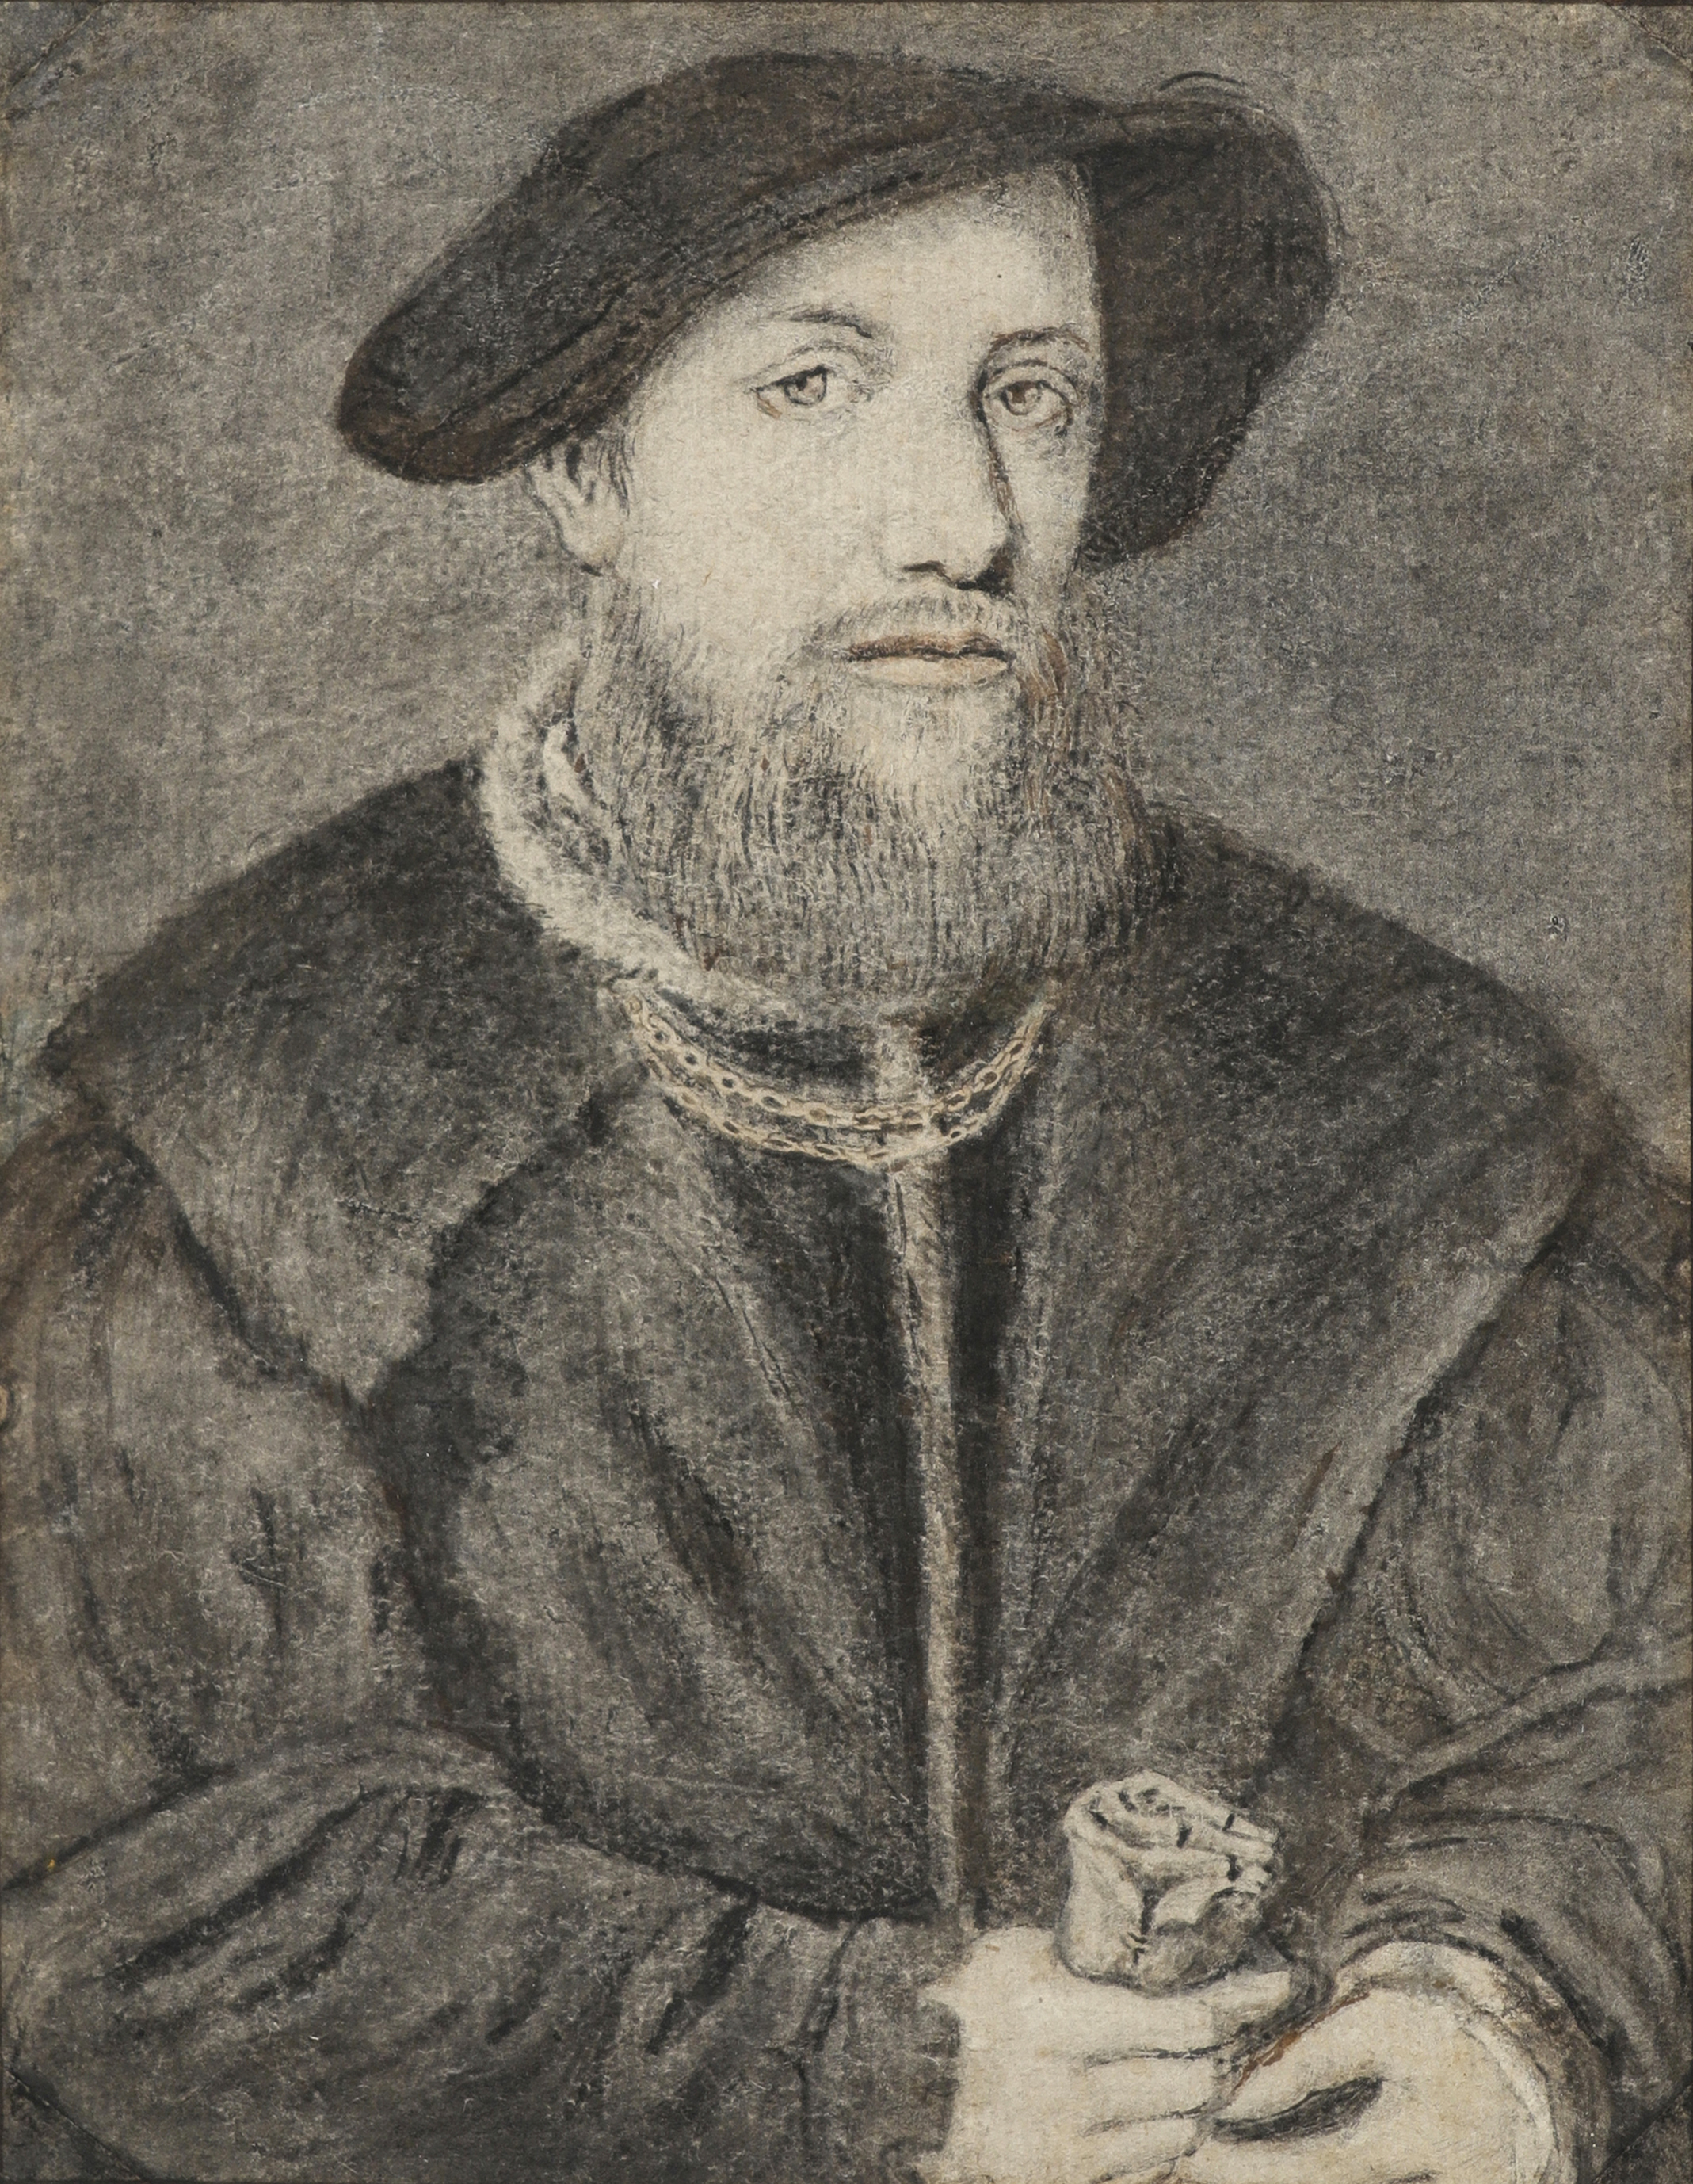 Lot 56 - Manner of Jan Gossaert Portrait of a gentleman holding gloves Black and red chalk, pen and brown in,